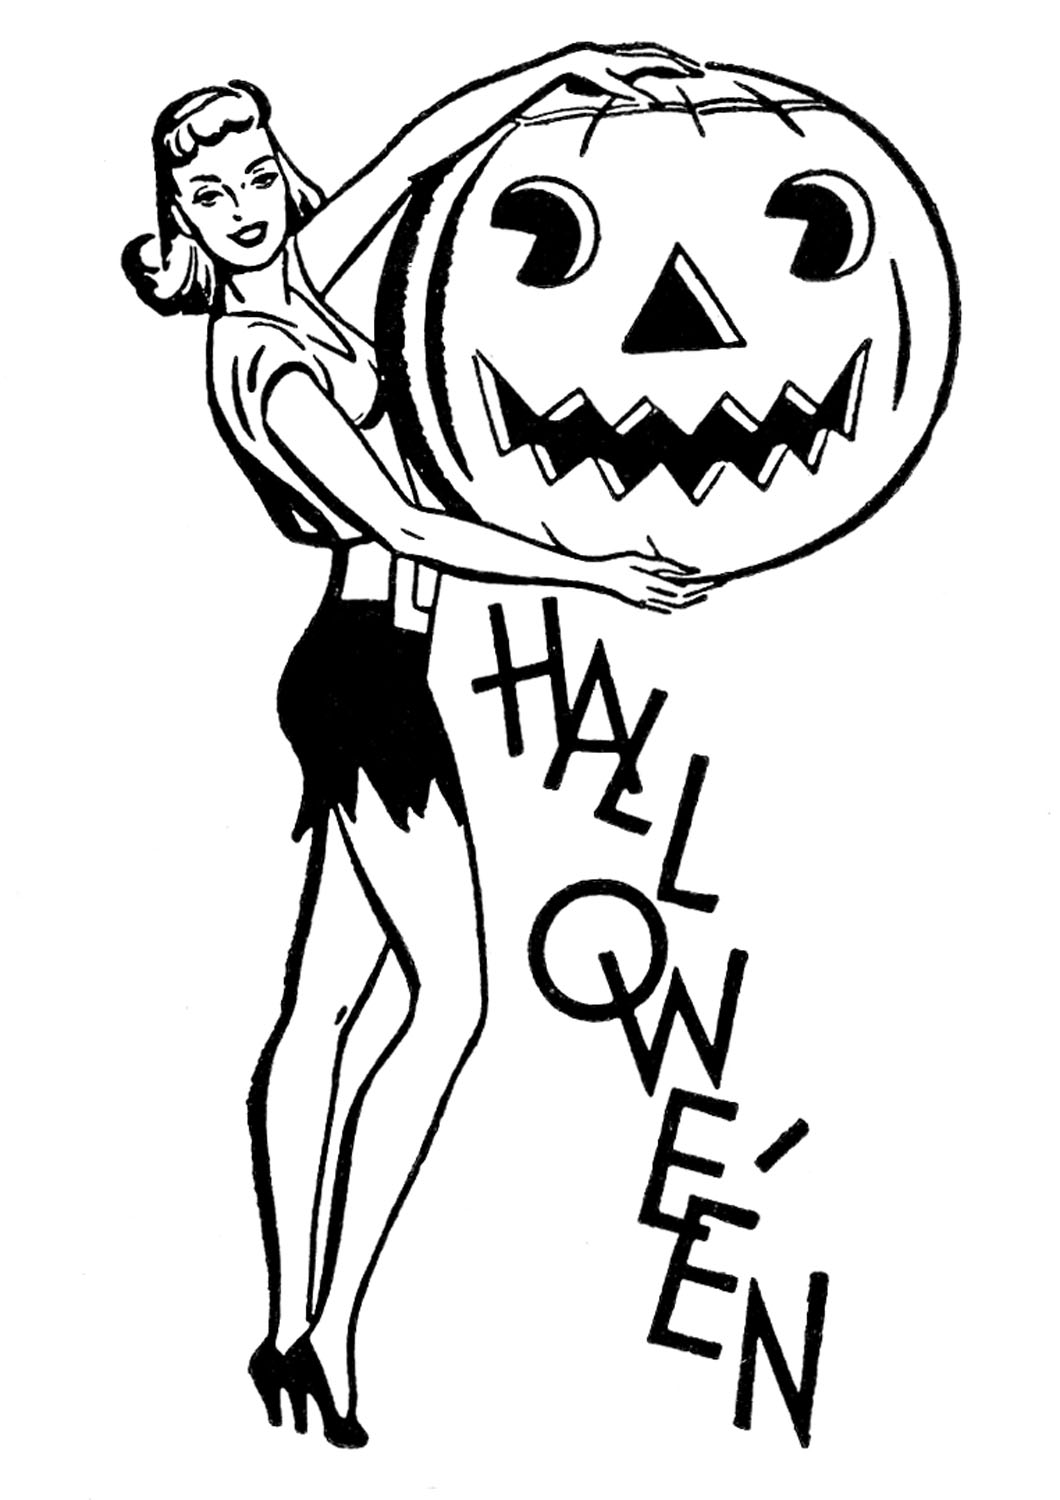 coloring clipart halloween black and white 10 halloween witches clipart updated the graphics fairy clipart coloring white black and halloween